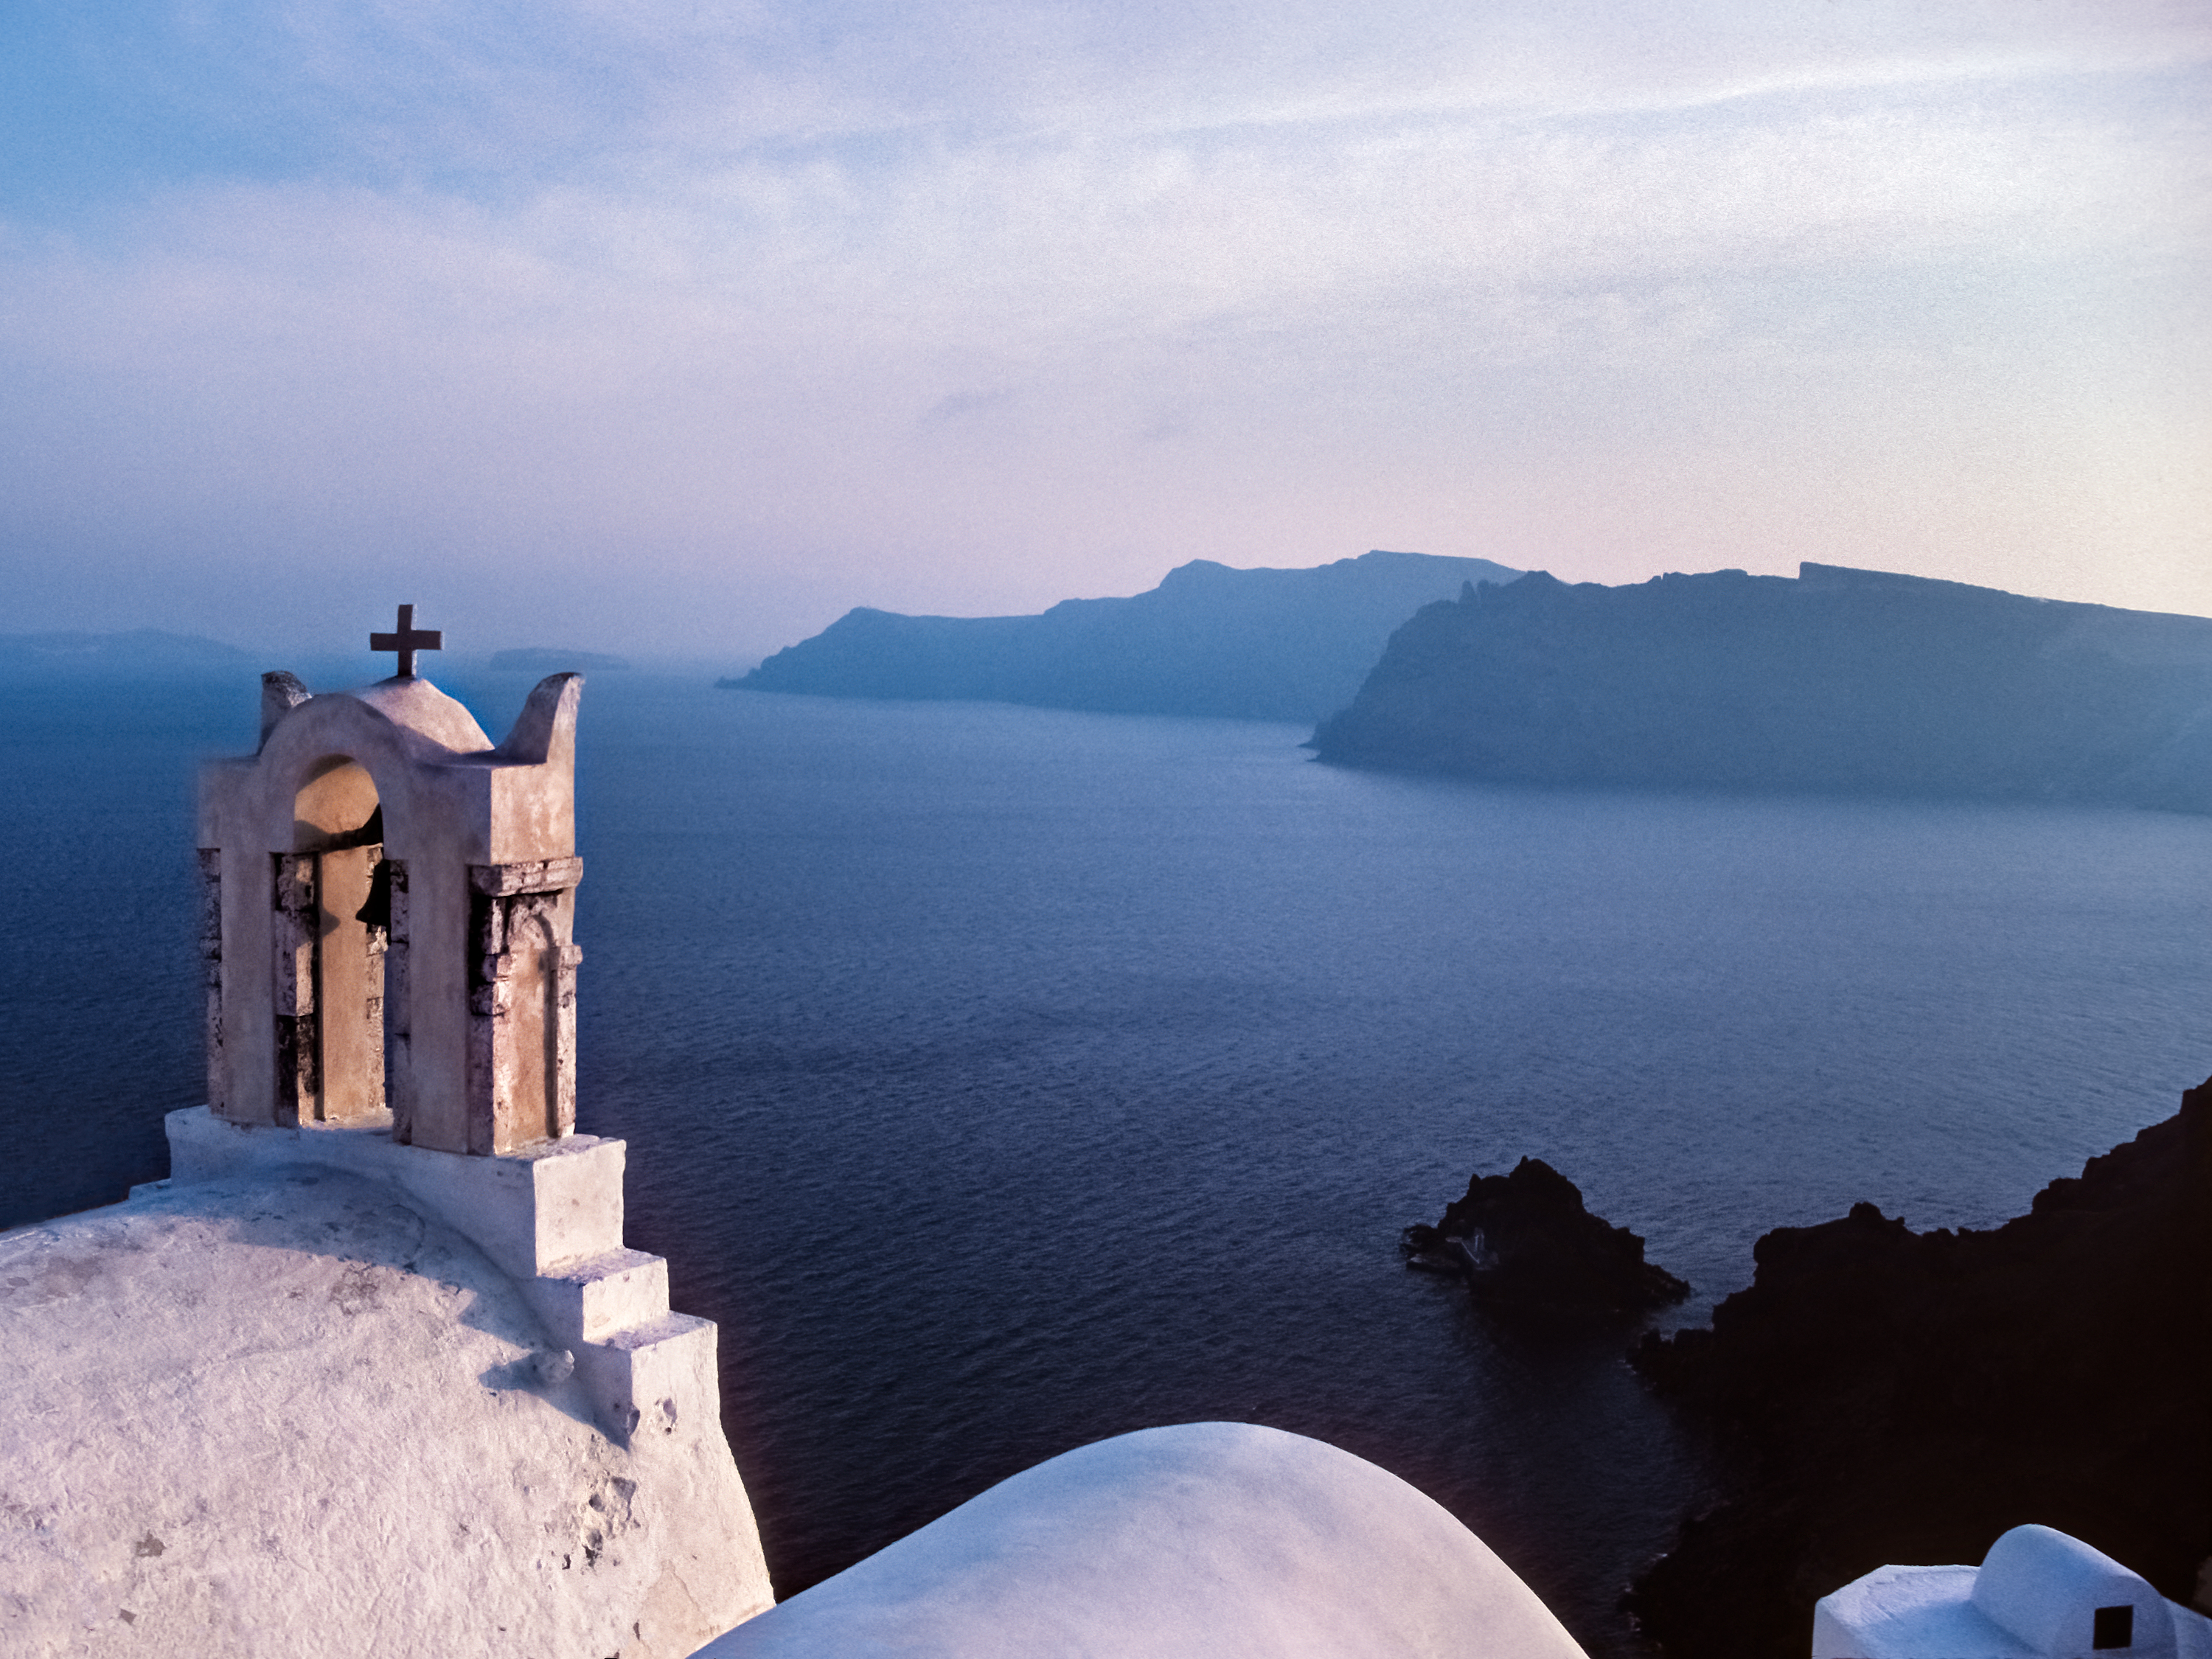 The coast of Thirasia and volcano as seen from a church in Oia on the island of Santorini, Greece by Peter Adams.